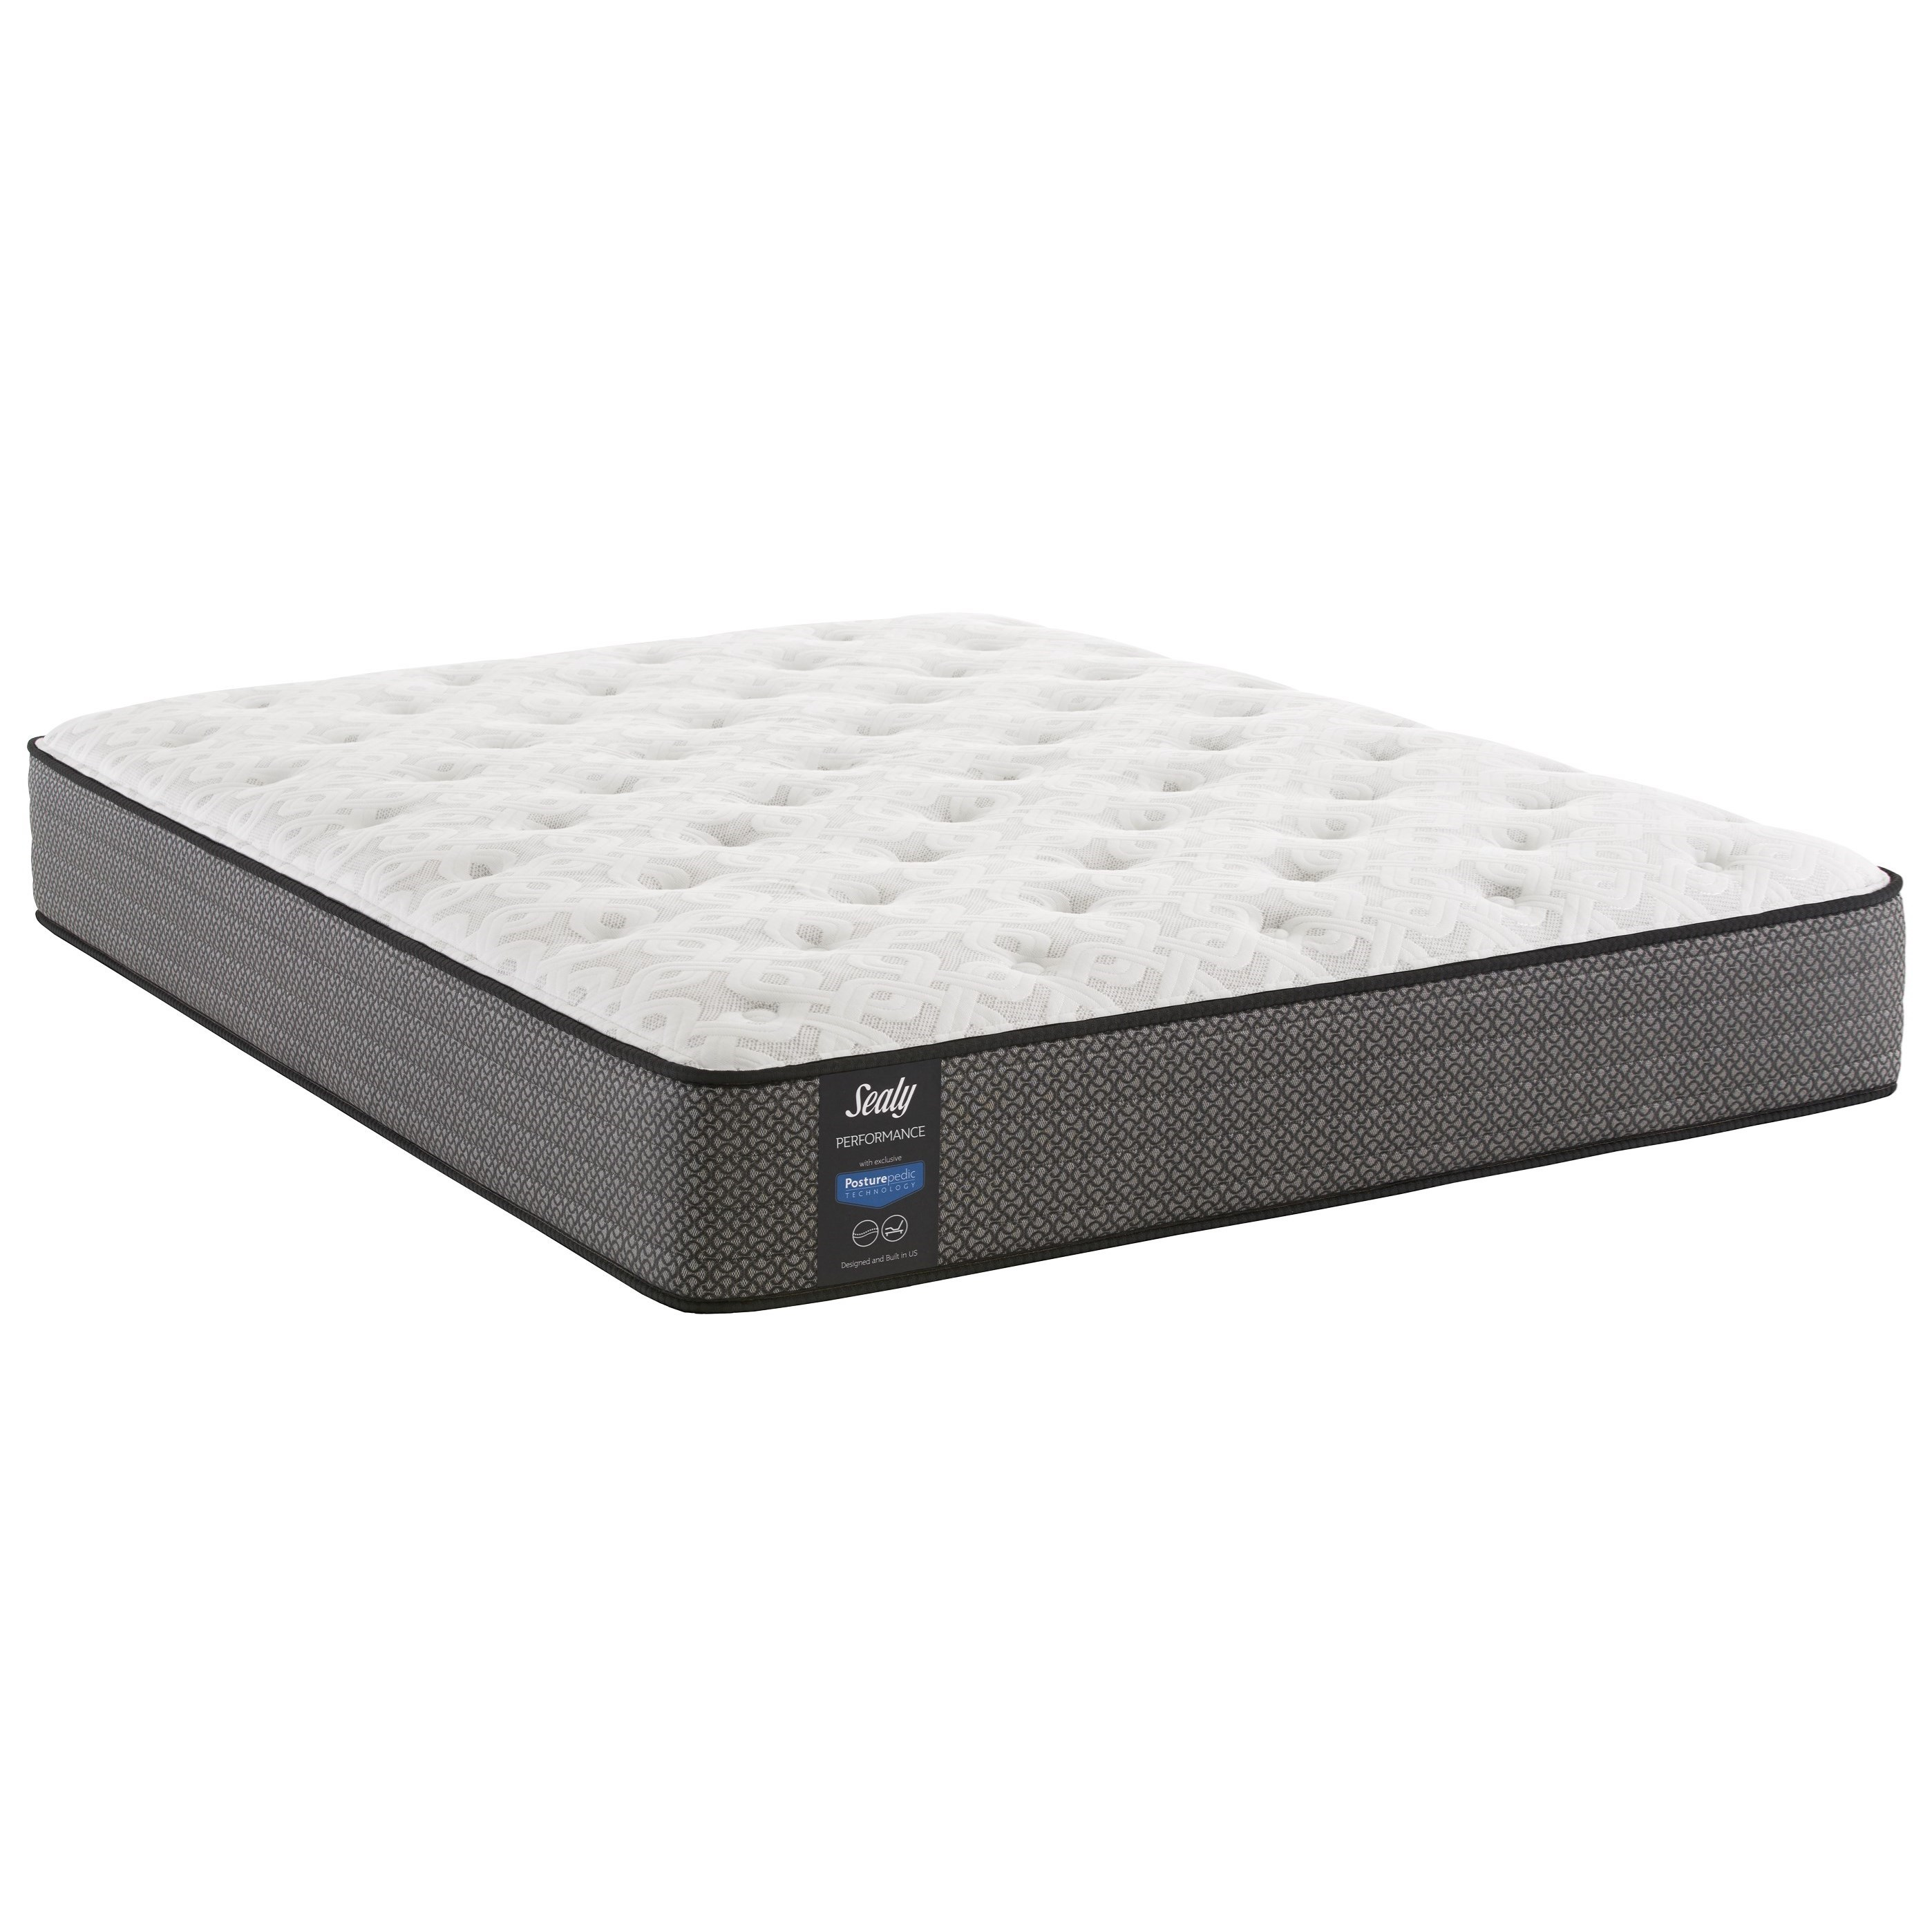 "Twin 12"" Cushion Firm Innerspring Mattress"